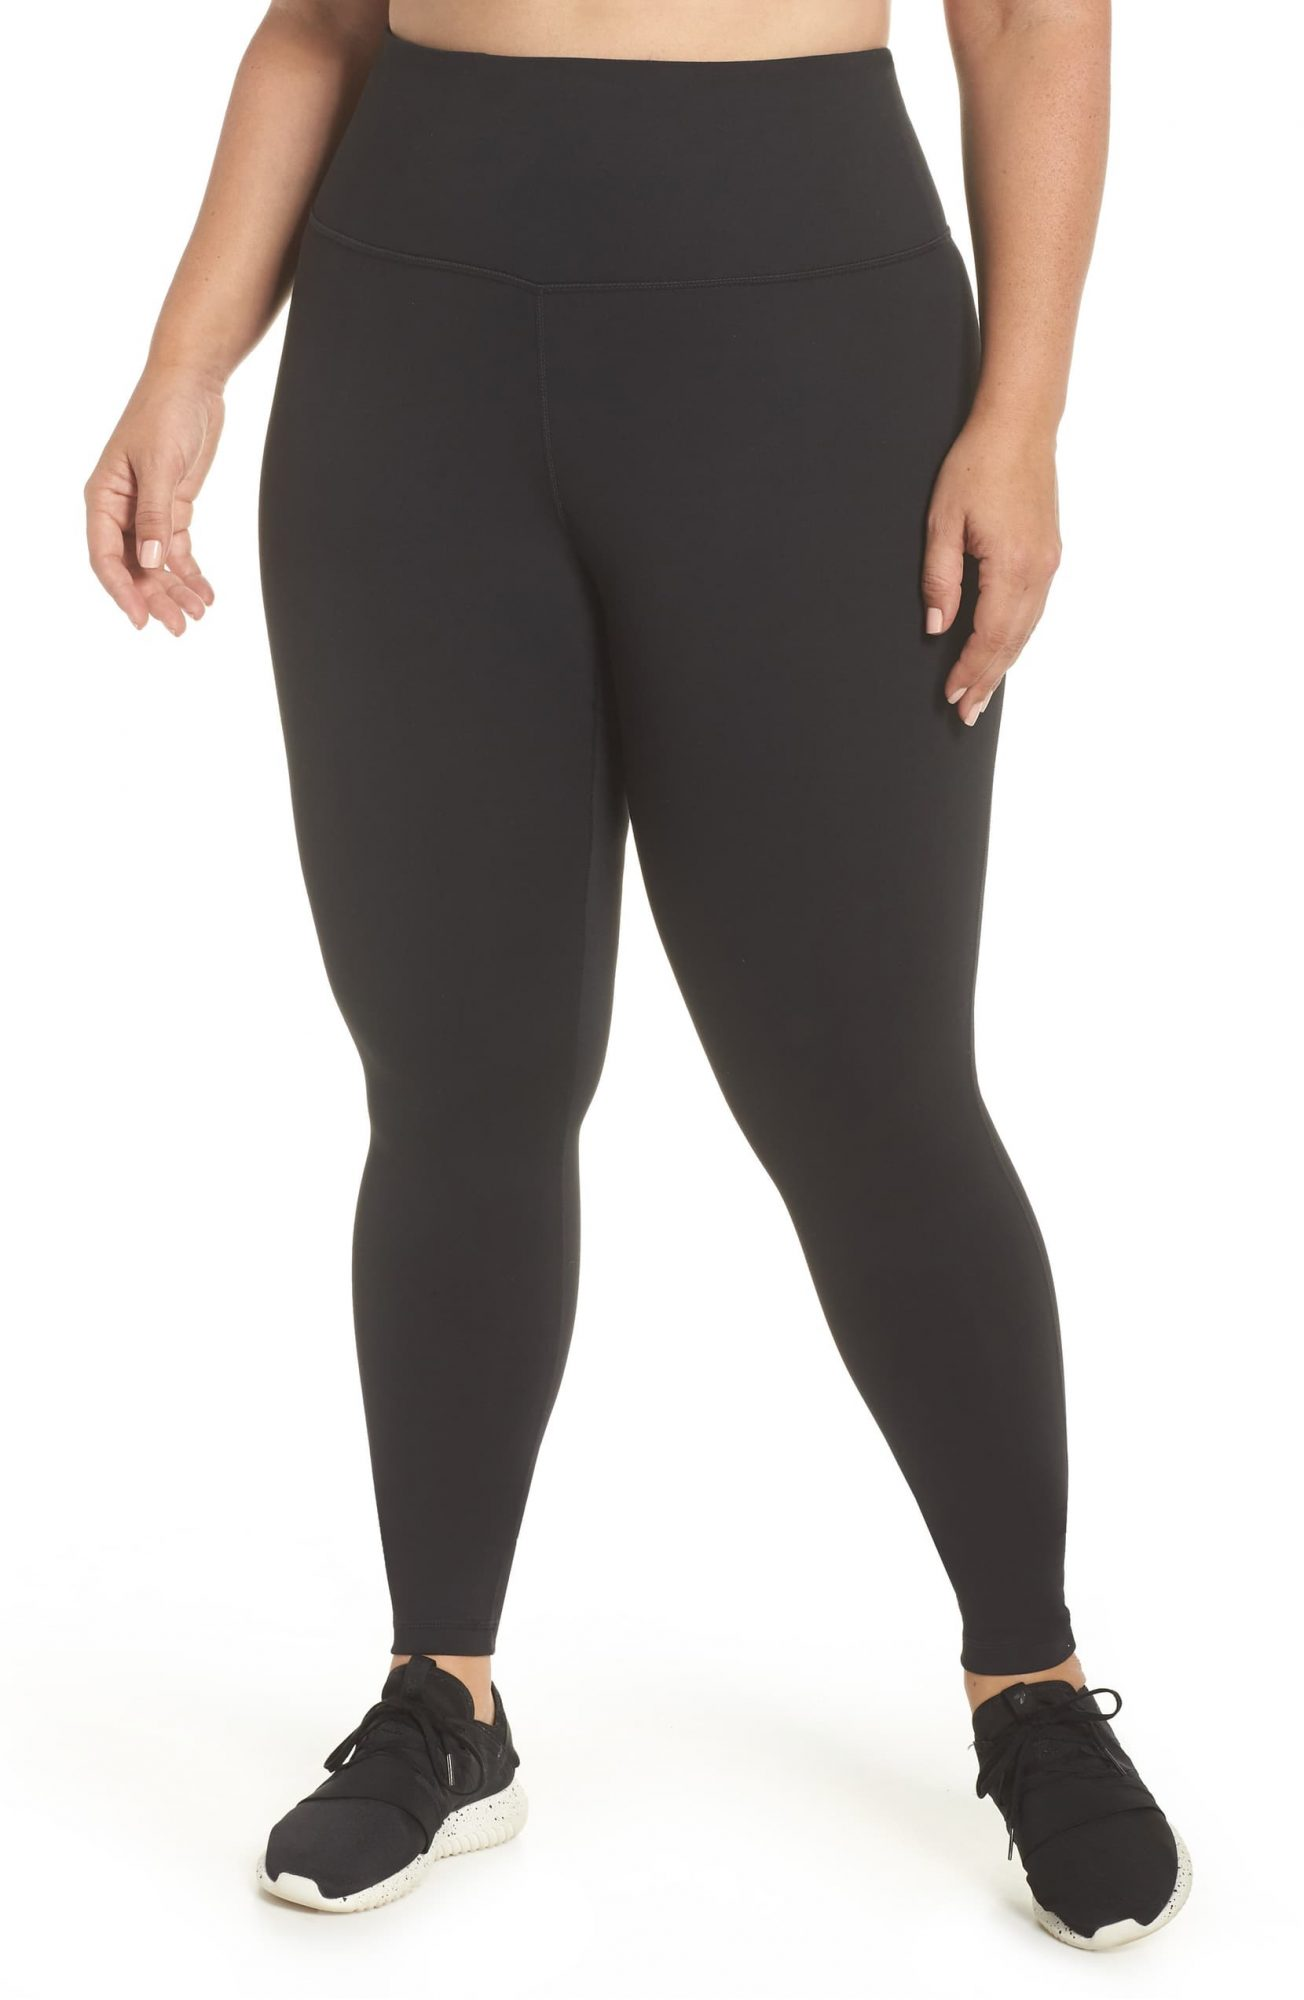 Zella Leggings Nordstrom Cyber Monday 2019 Sale